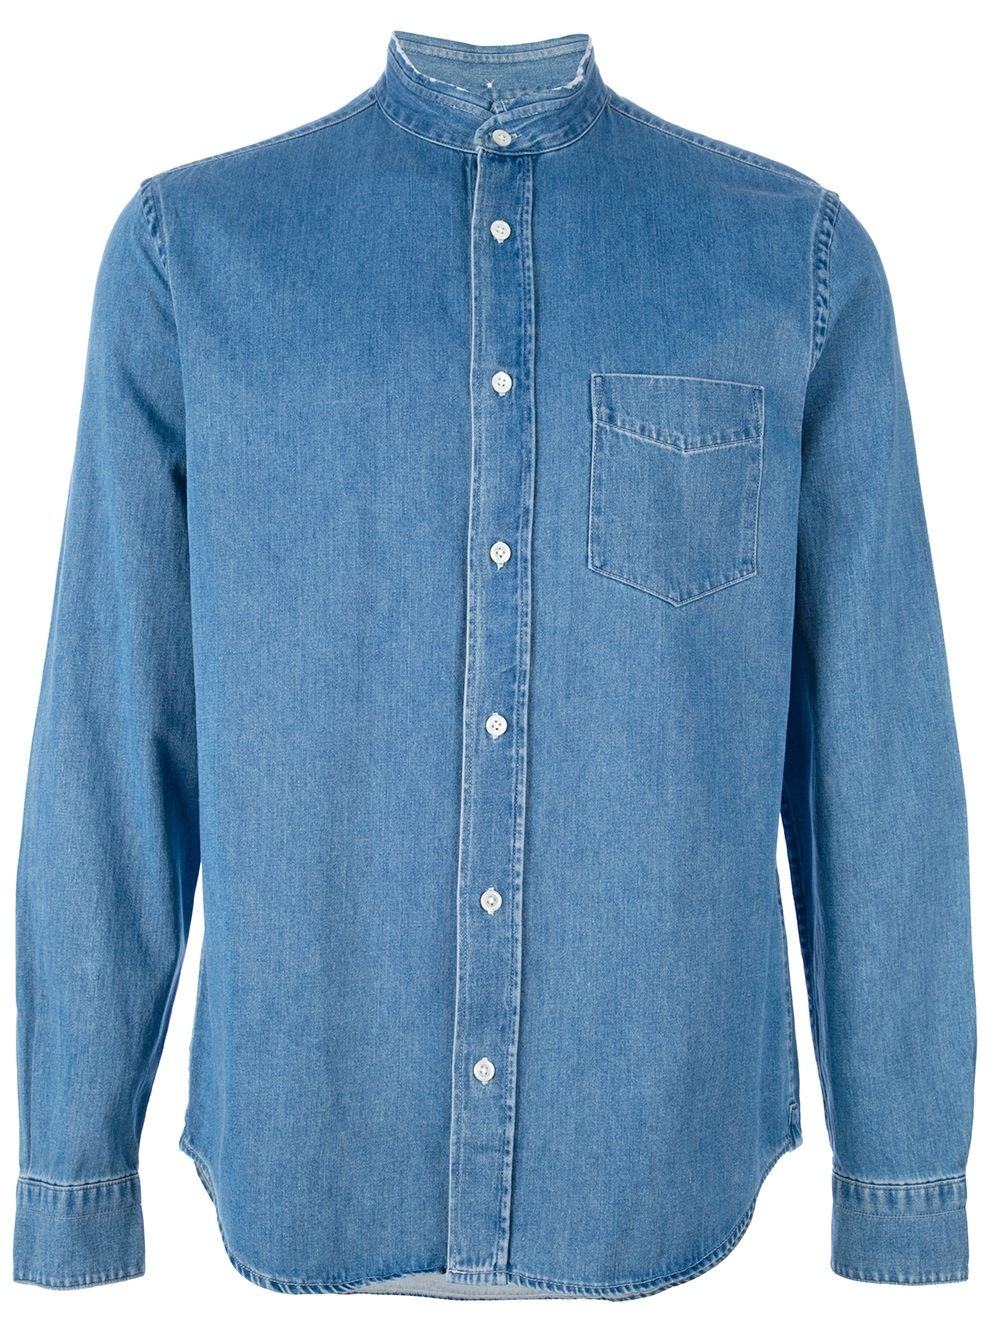 Denim shirts are a staple of mine, they're easy to wear and they maintain their shape. I really like this shirt because the mandarin collar makes it different from most.